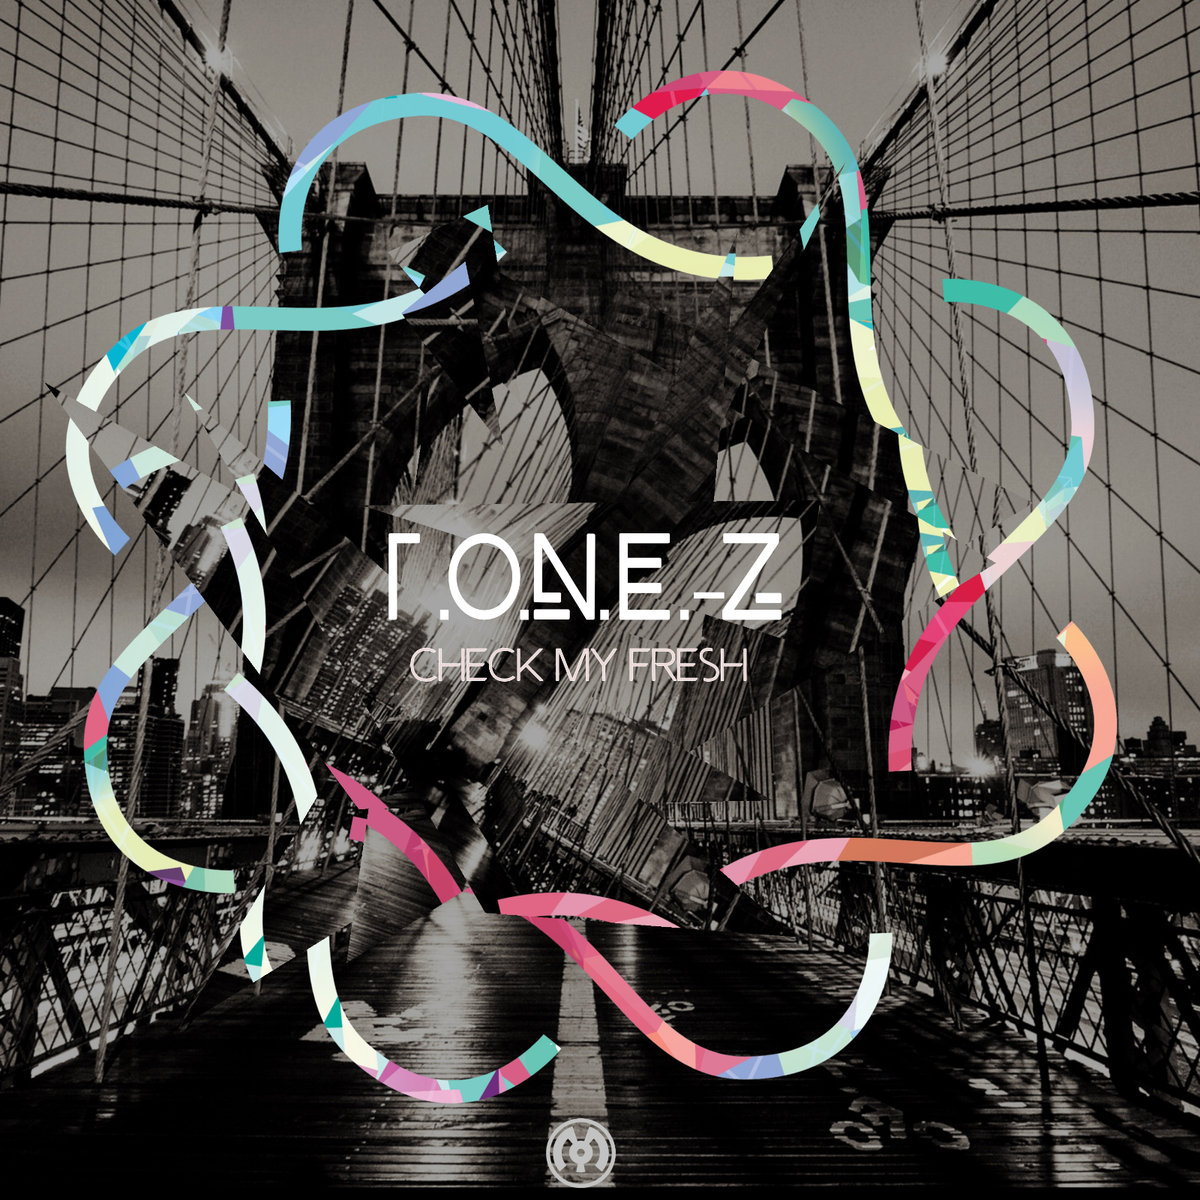 T.O.N.E.-z - Les Rock @ 'Check My Fresh' album (electronic, dubstep)